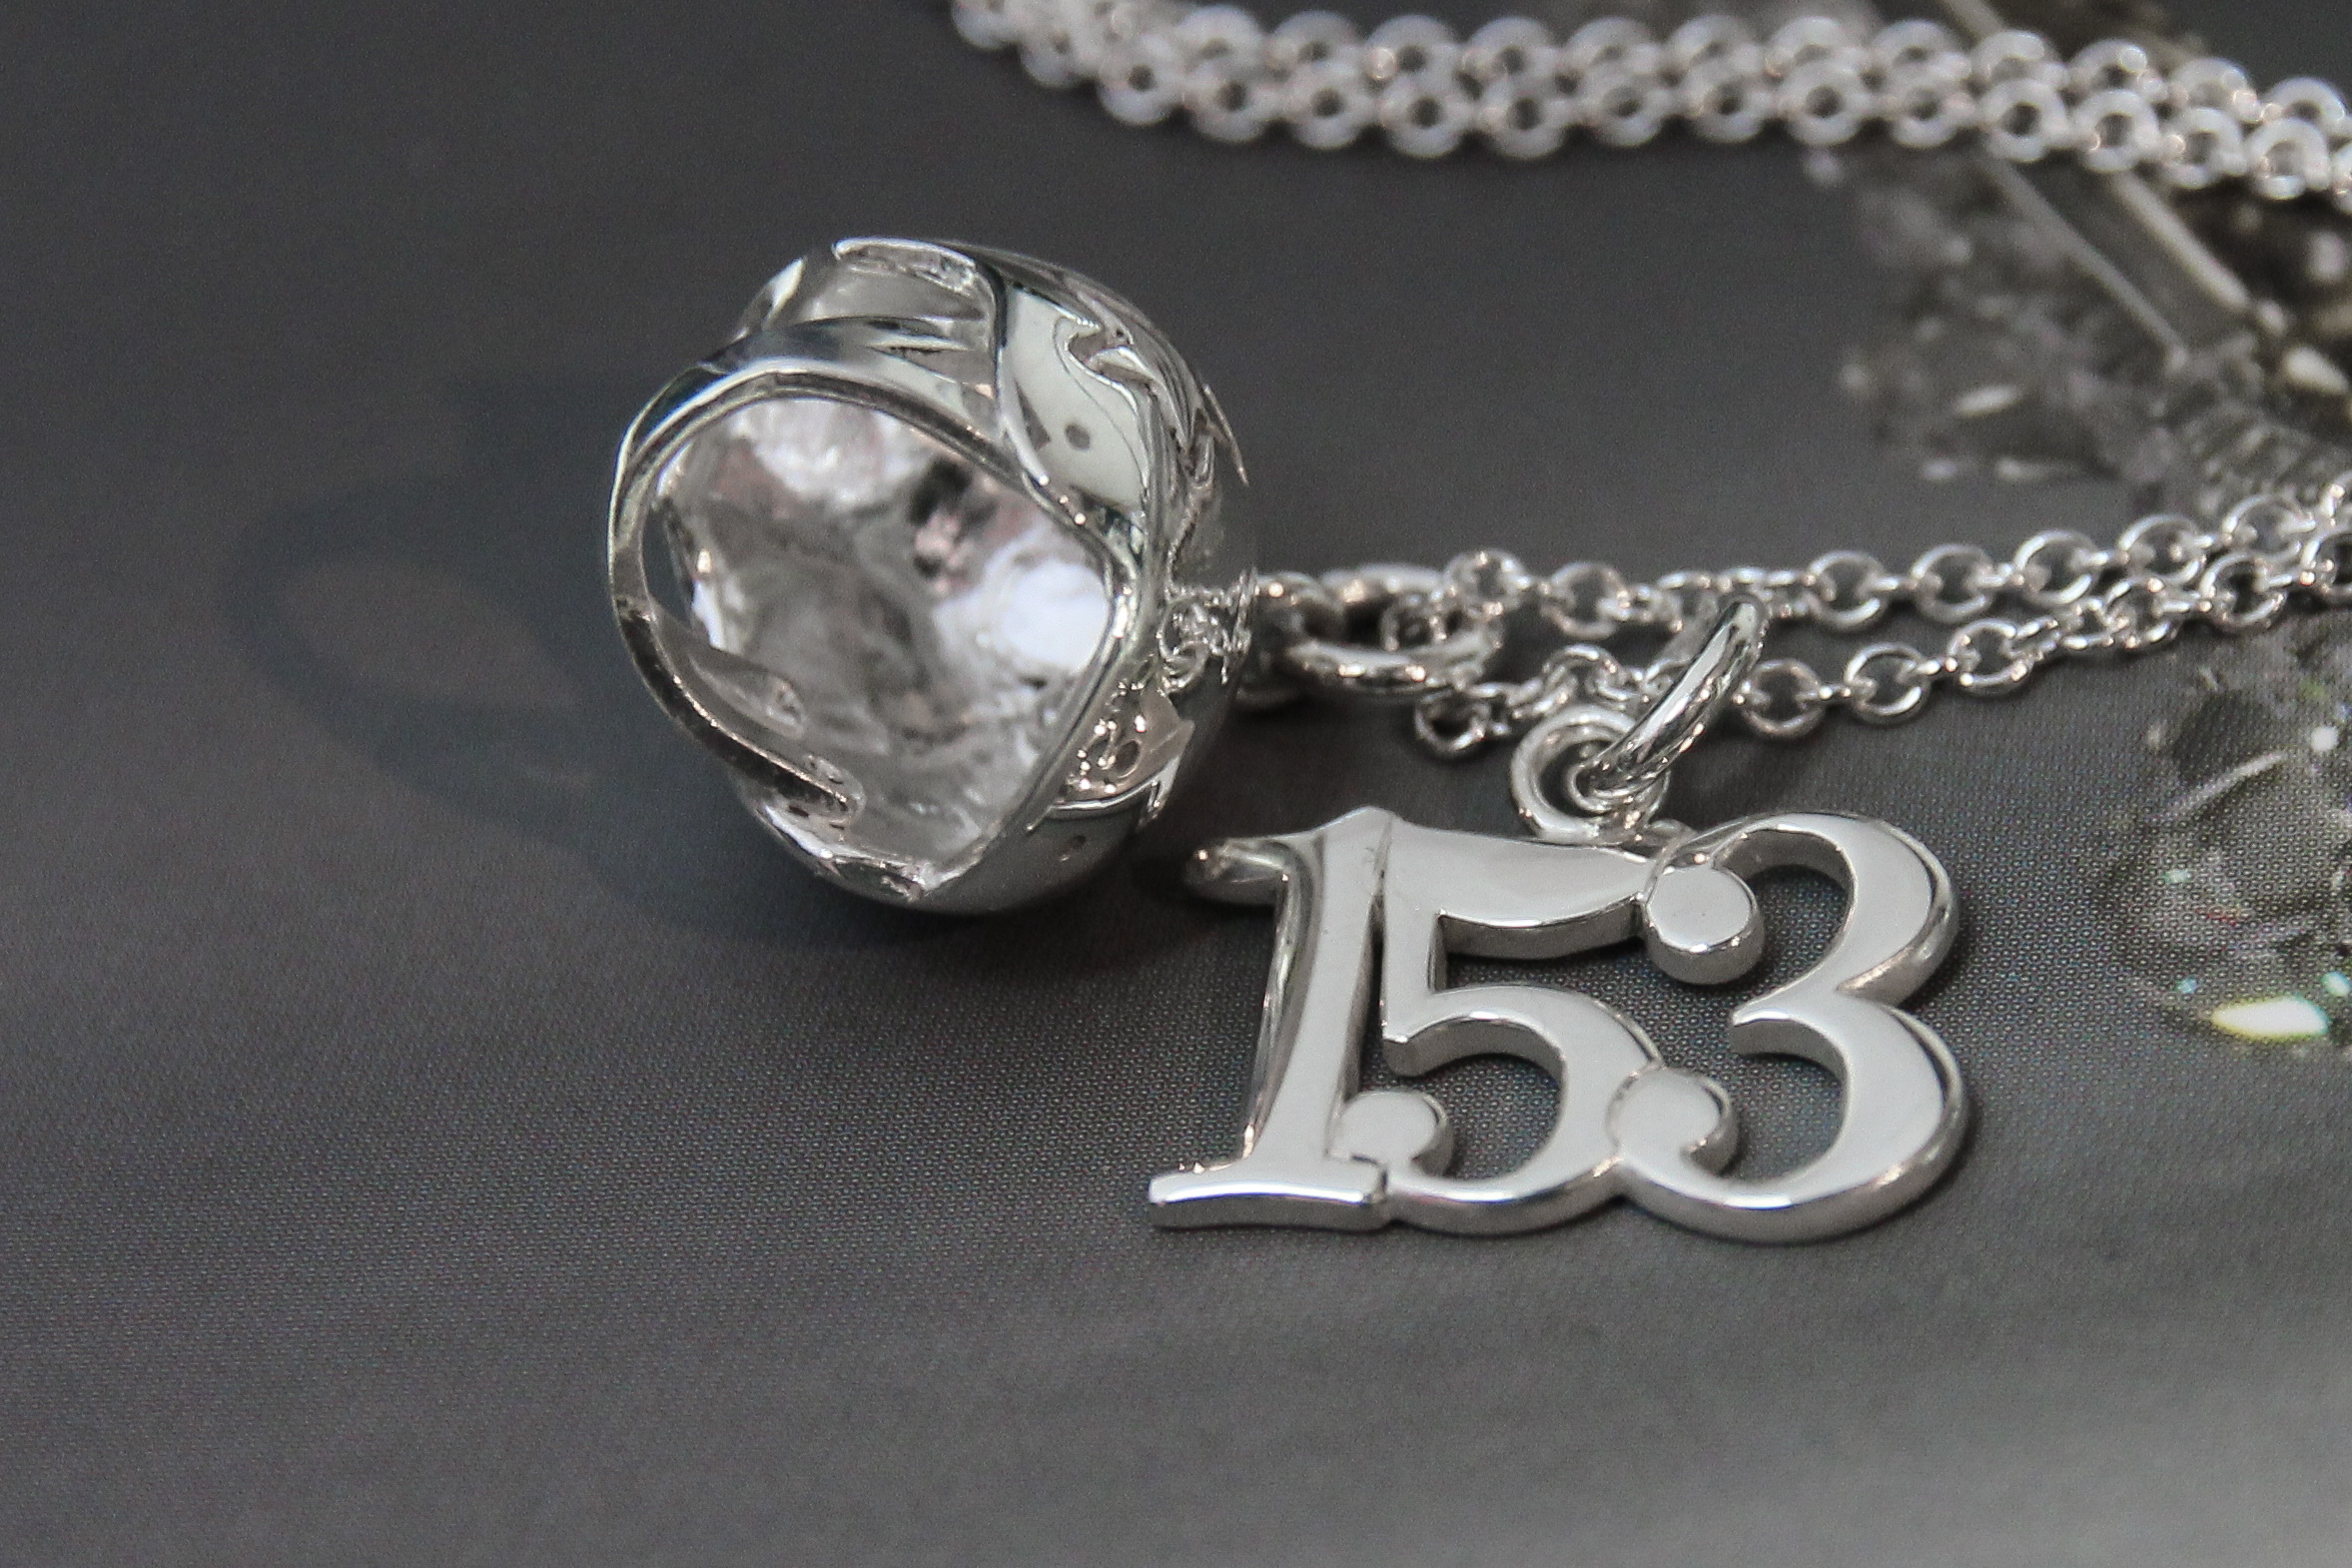 Silver custom jammer helmet necklace 153